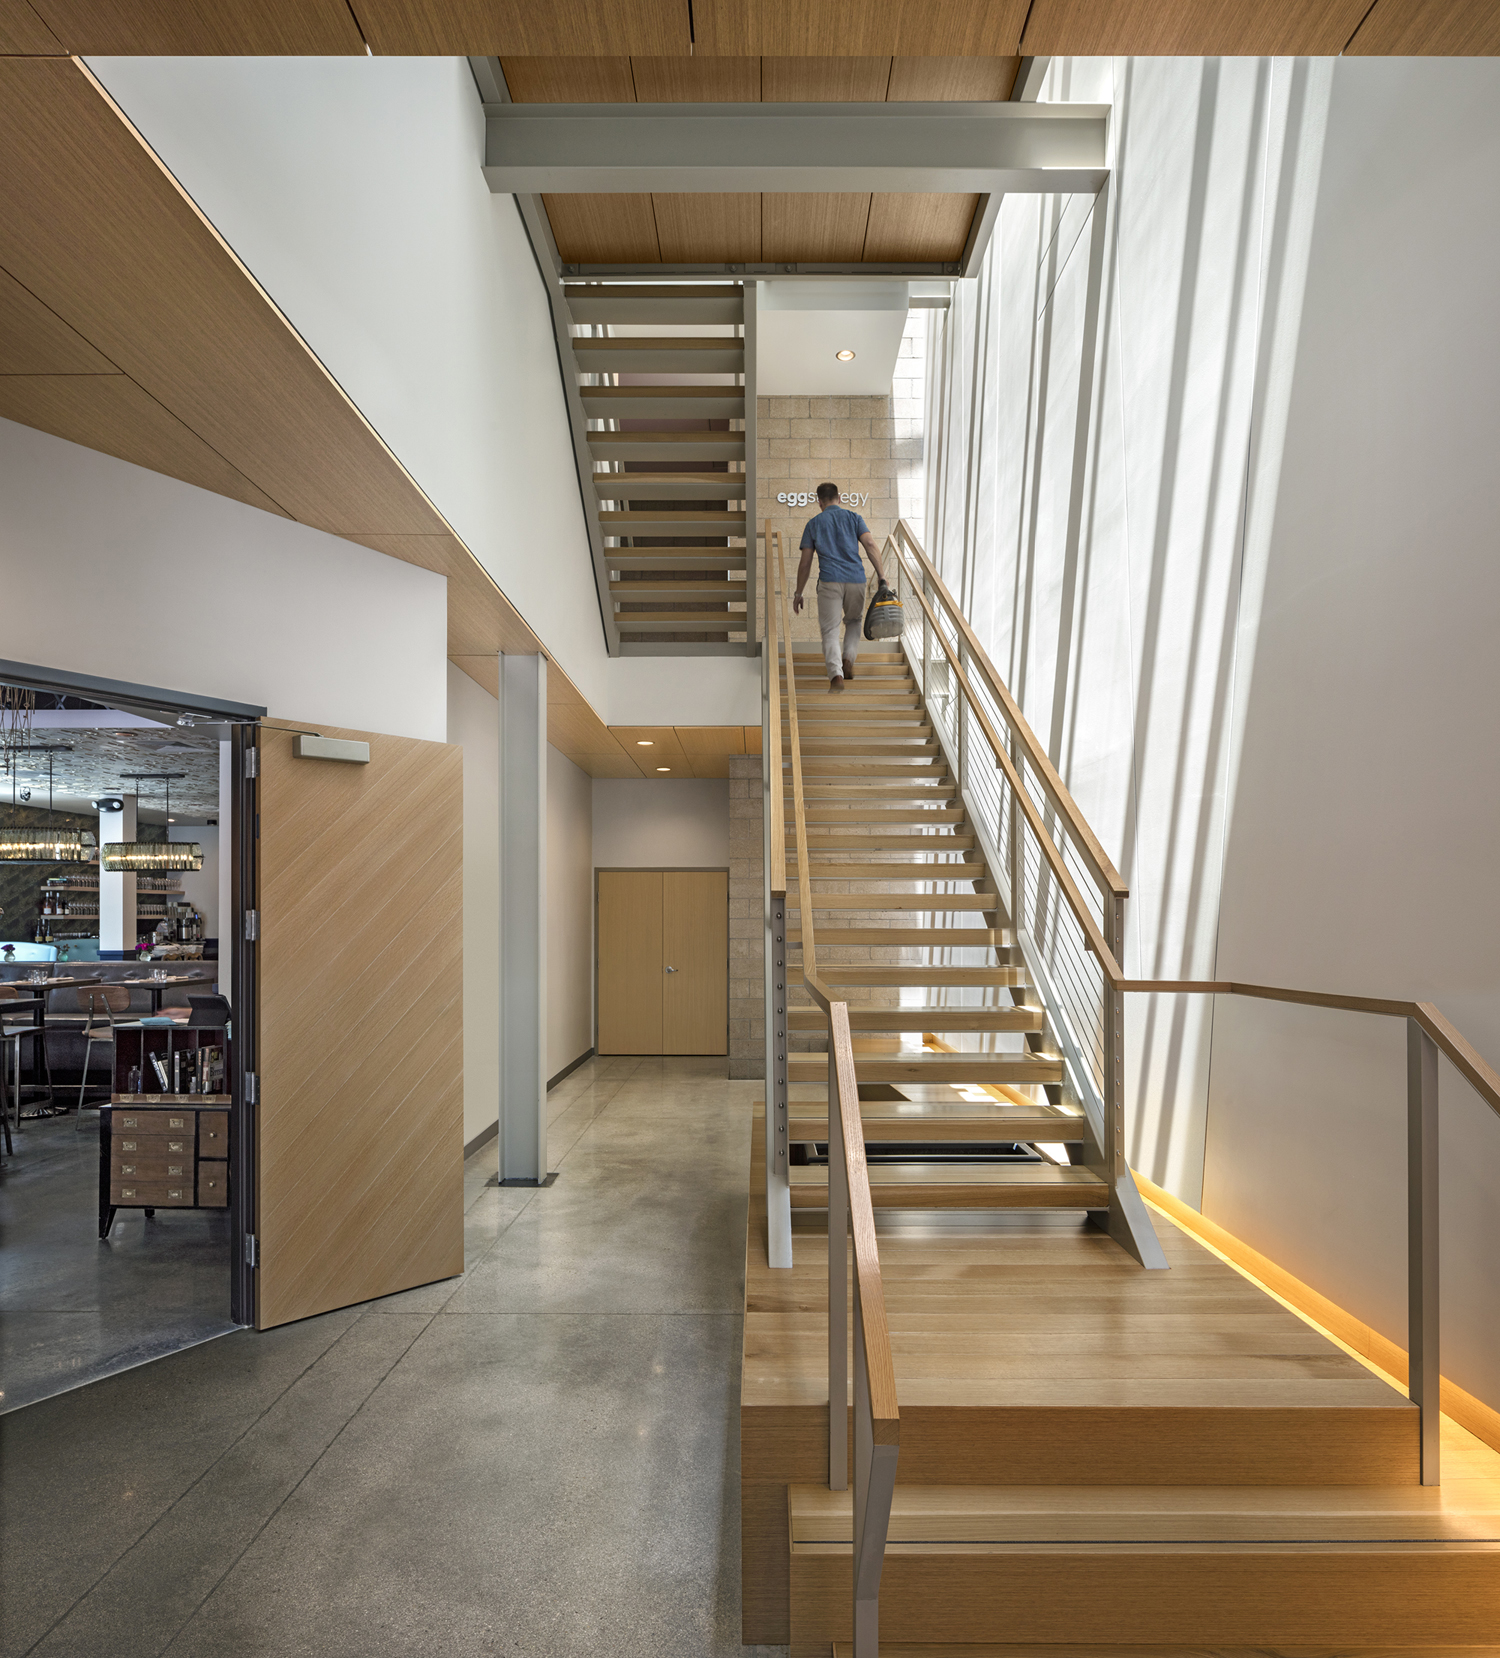 Colorado architecture firm arch11 designs next generation for Office stairs design